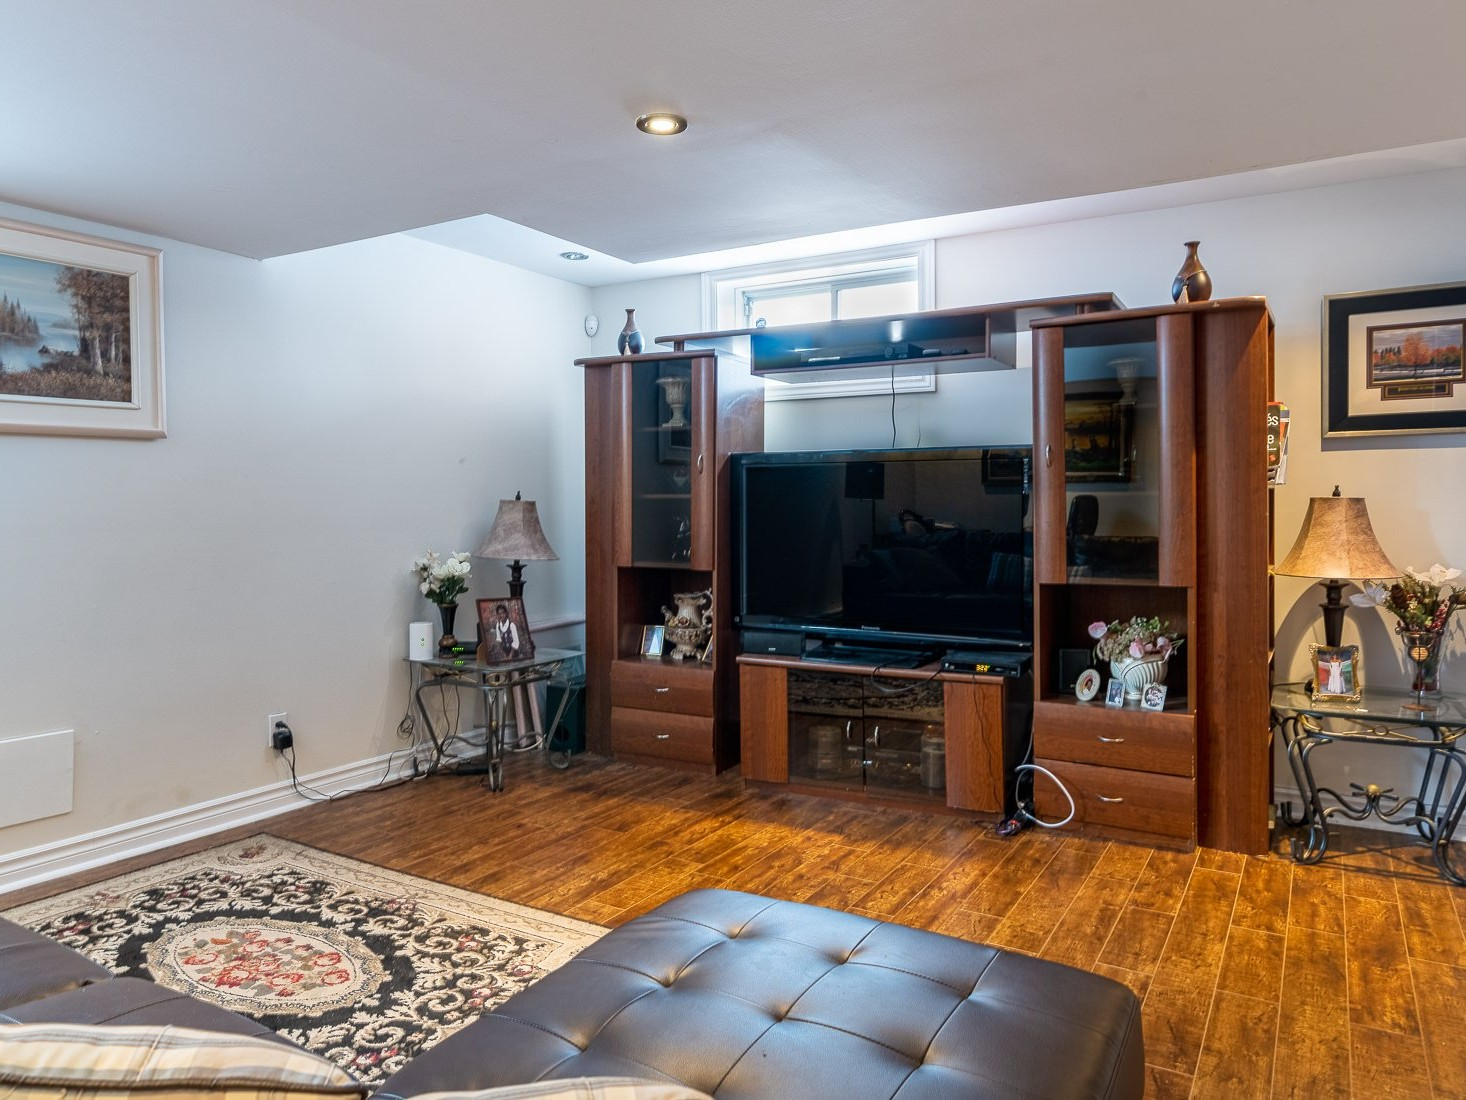 duplex for rent near me cheap